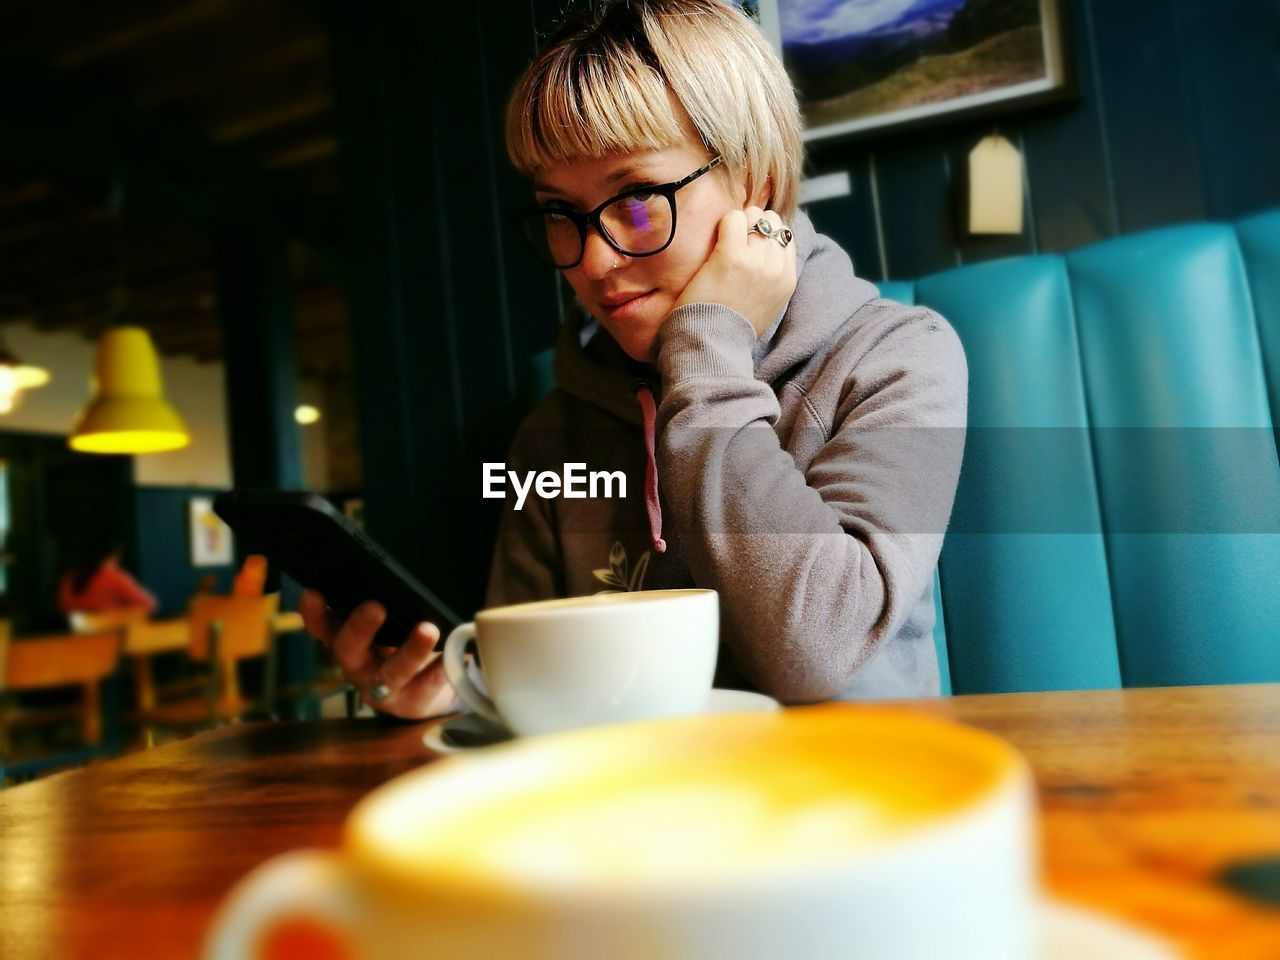 Woman Using Phone By Coffee Cup In Cafe